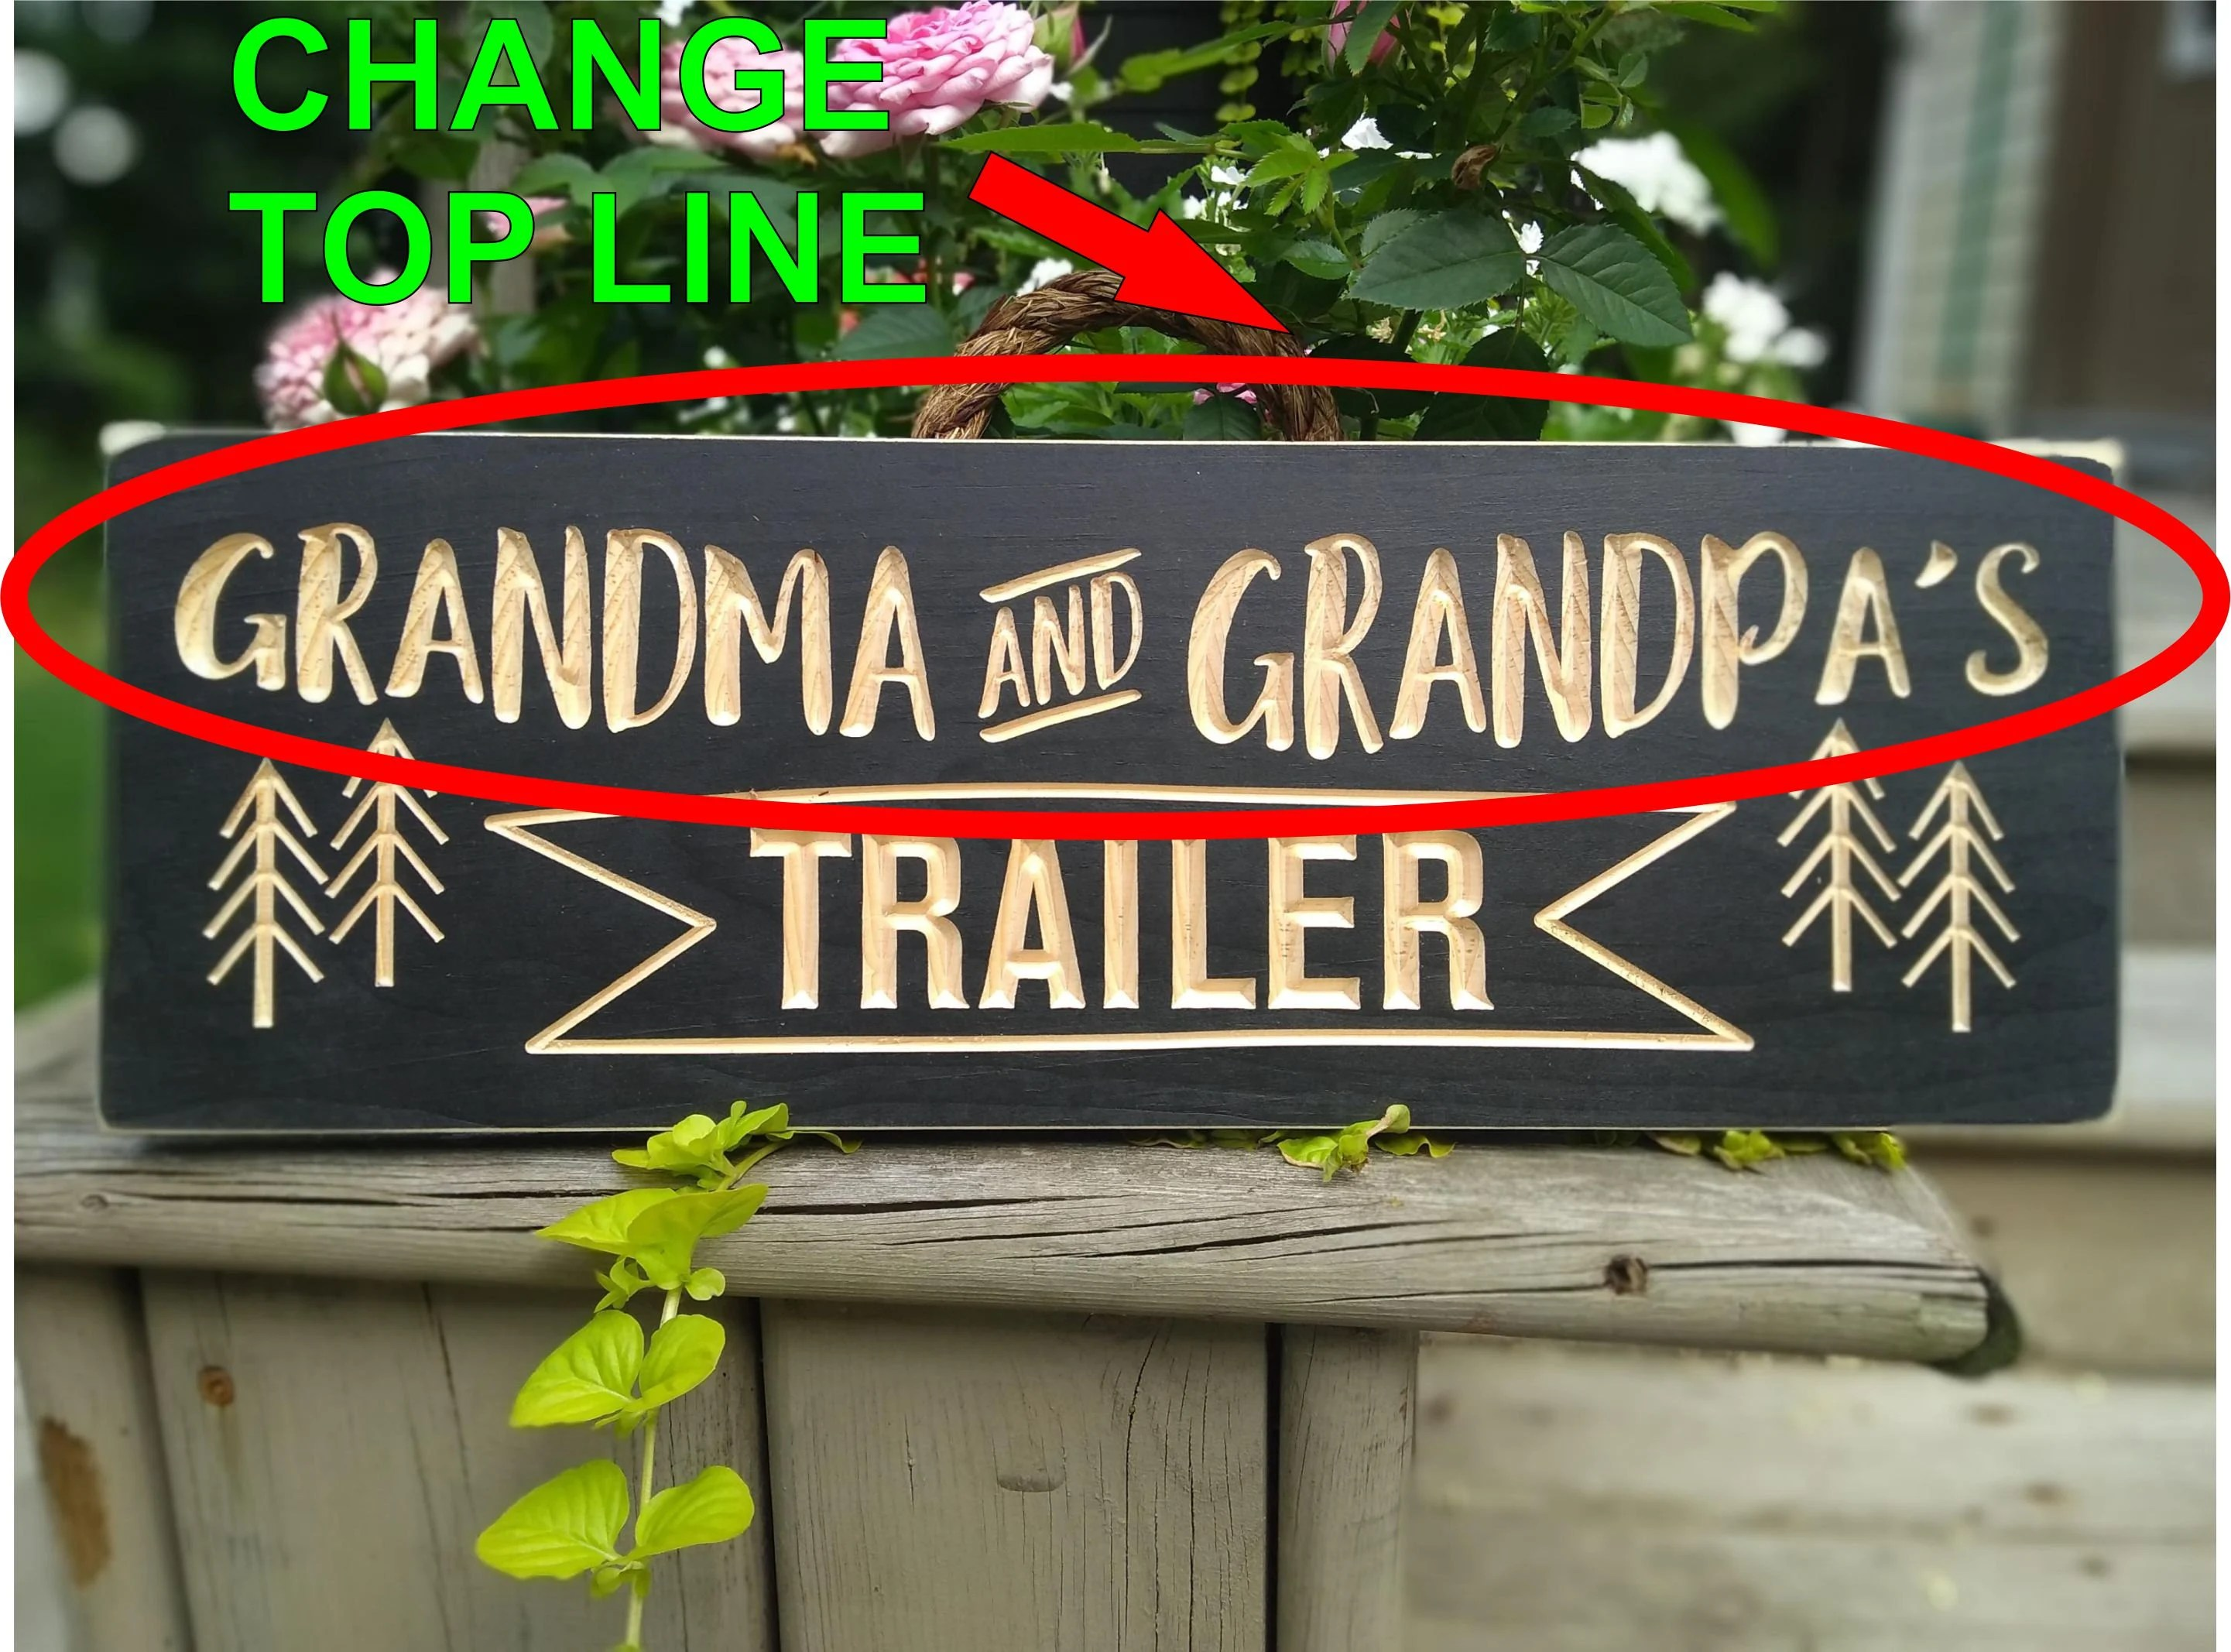 Wooden signGrandma and Grandpa's Trailerpersonalized Change Top Line